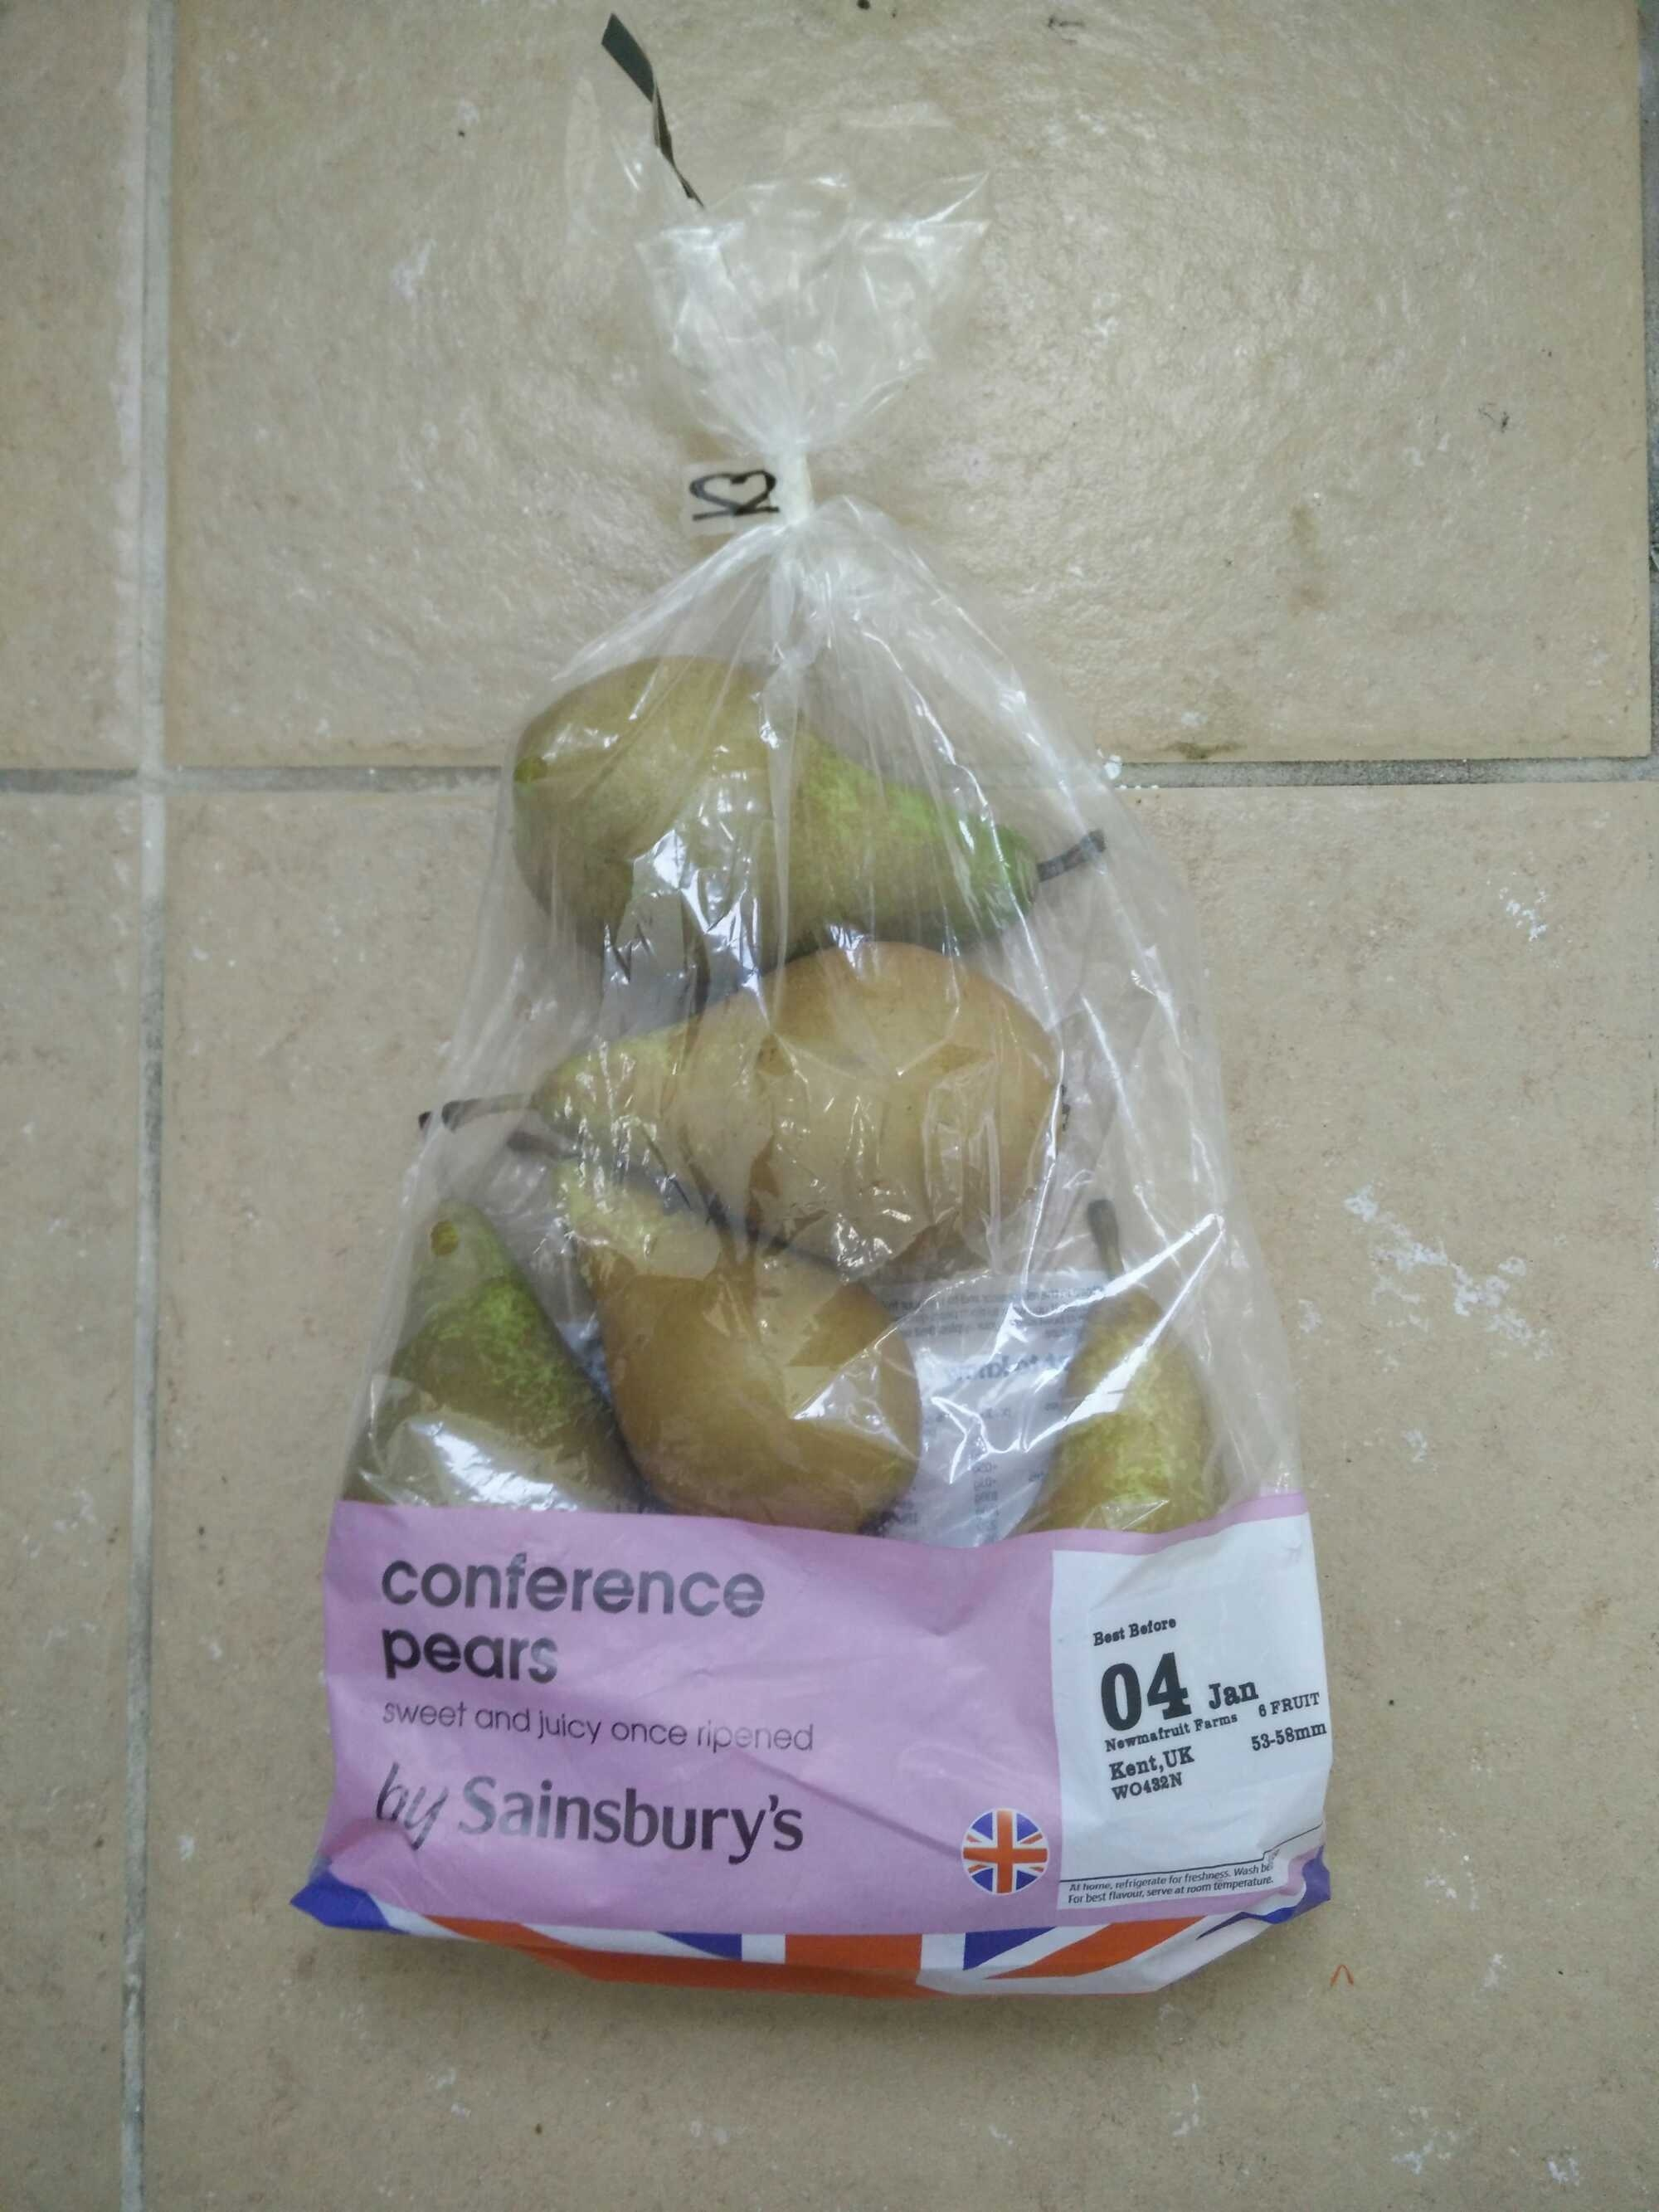 conference pears - Product - en